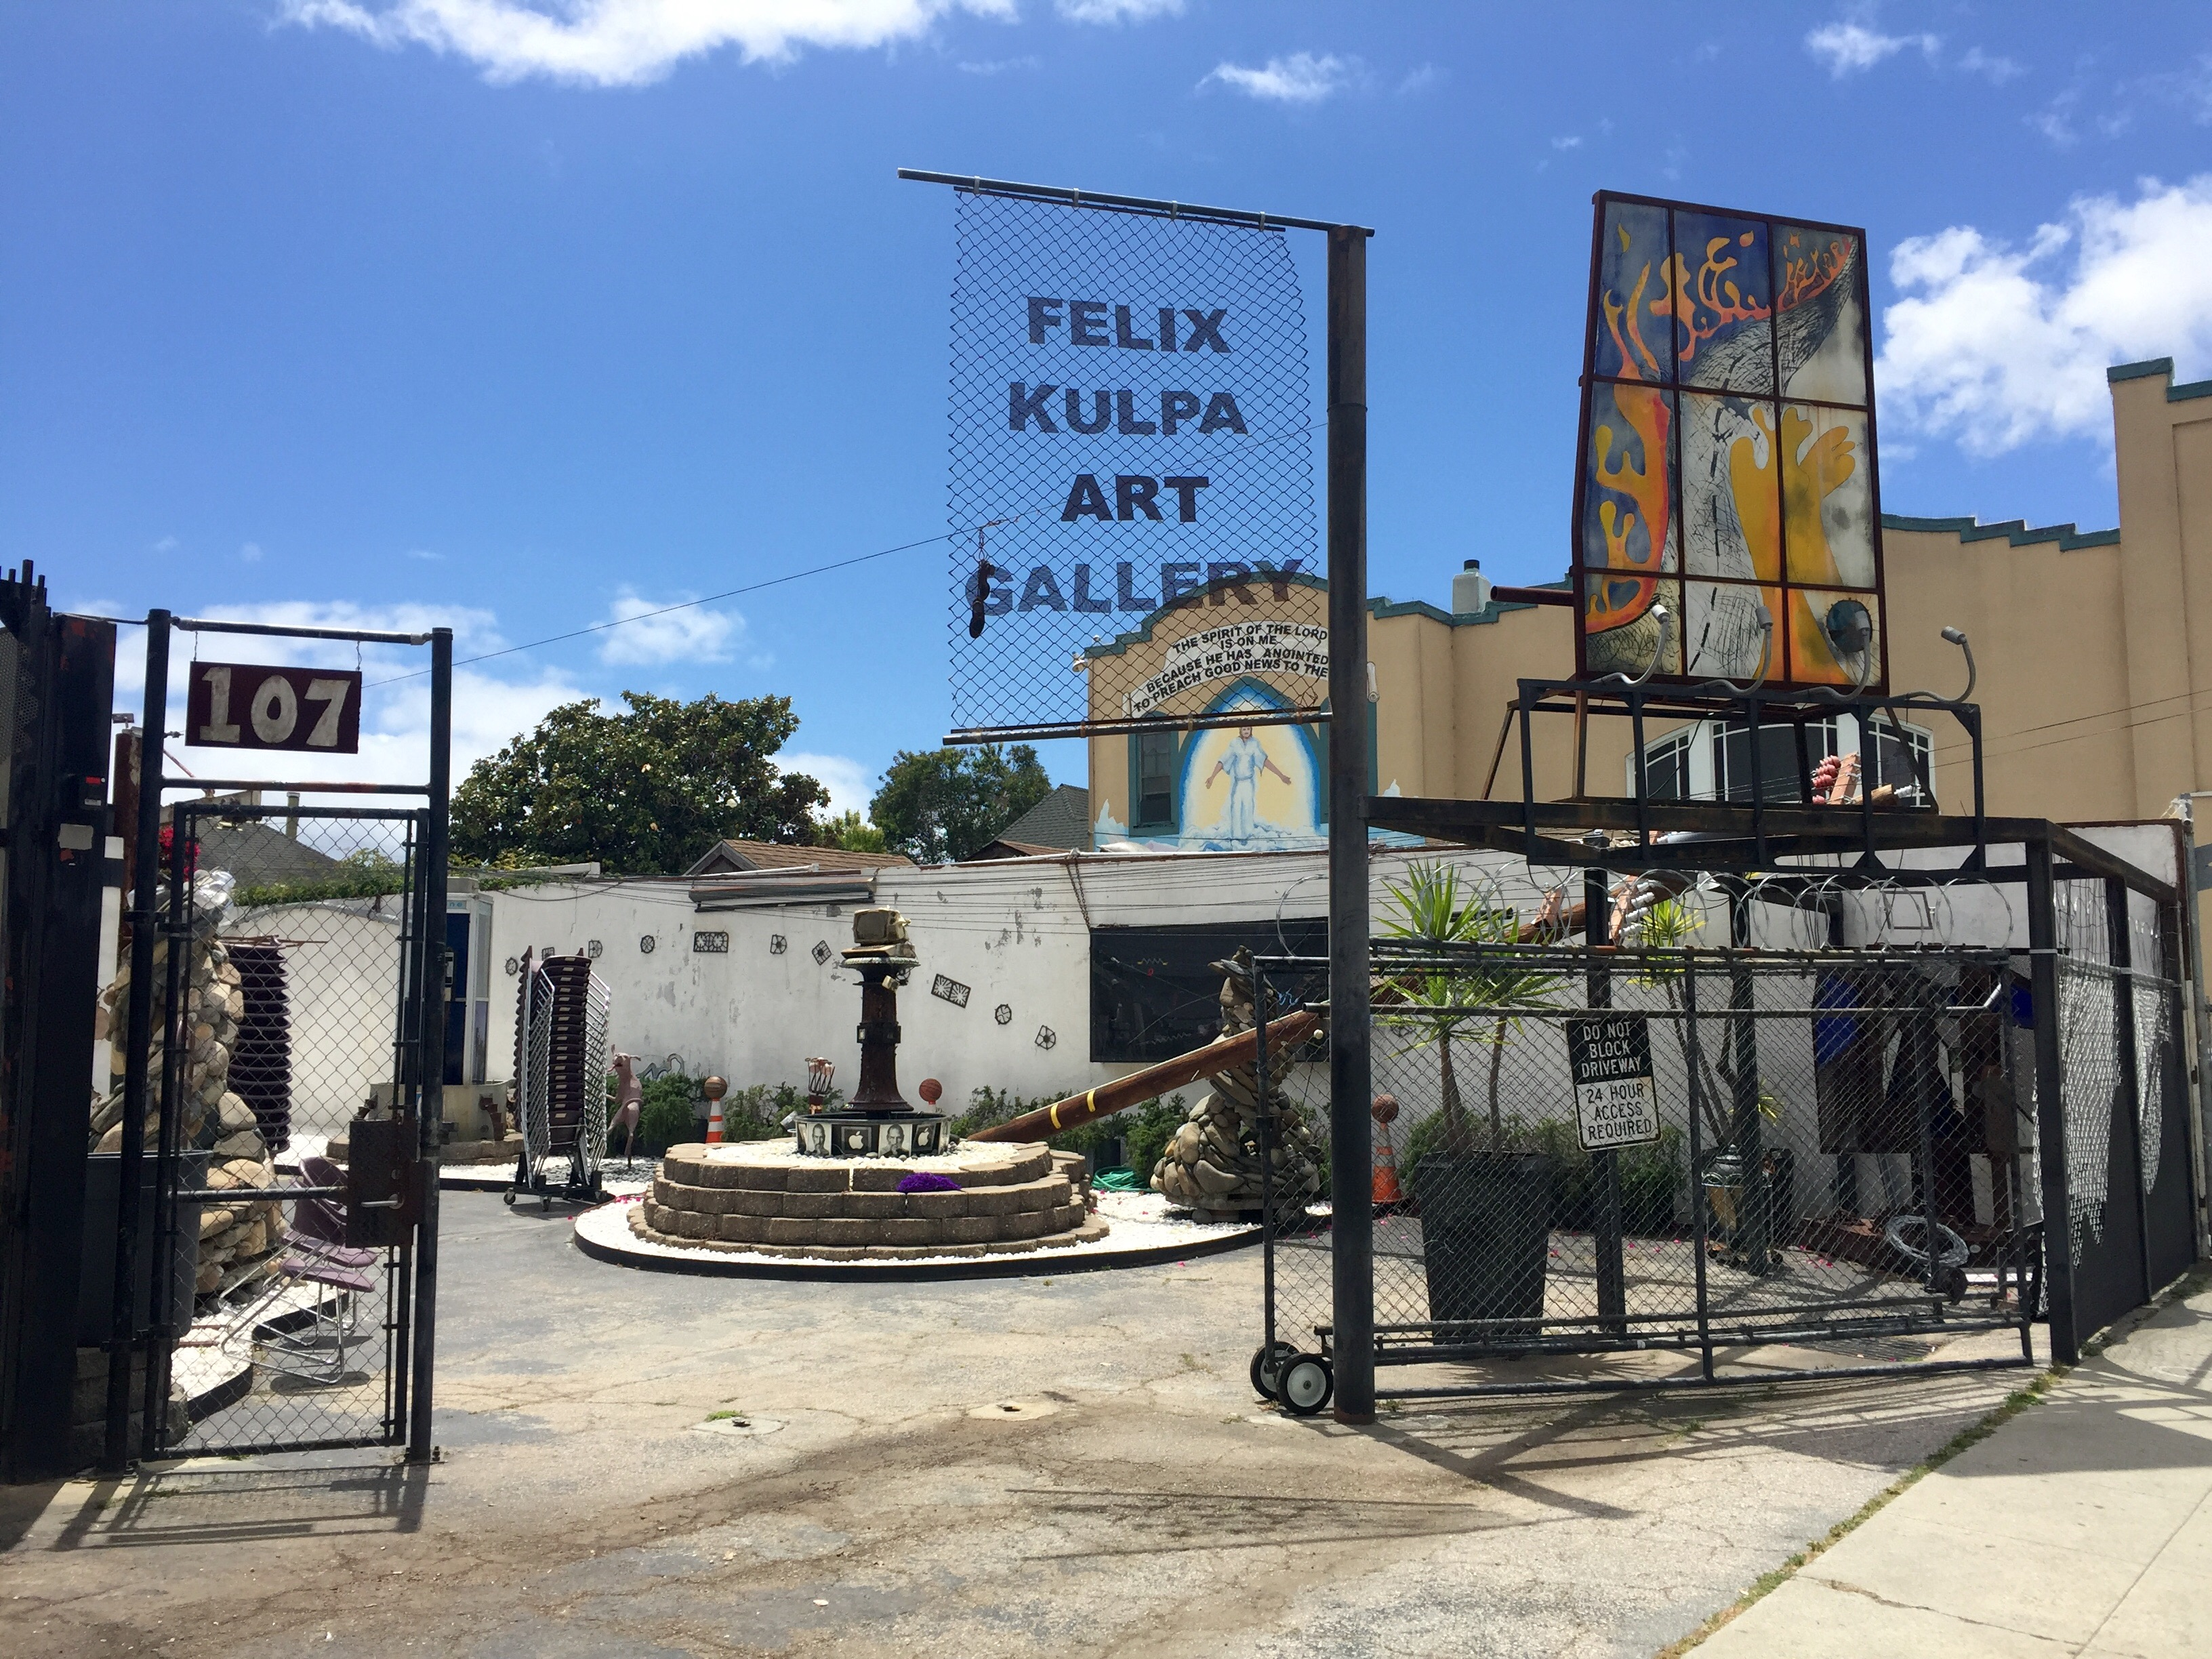 The Felix Kulpa Gallery and Sculpture Garden